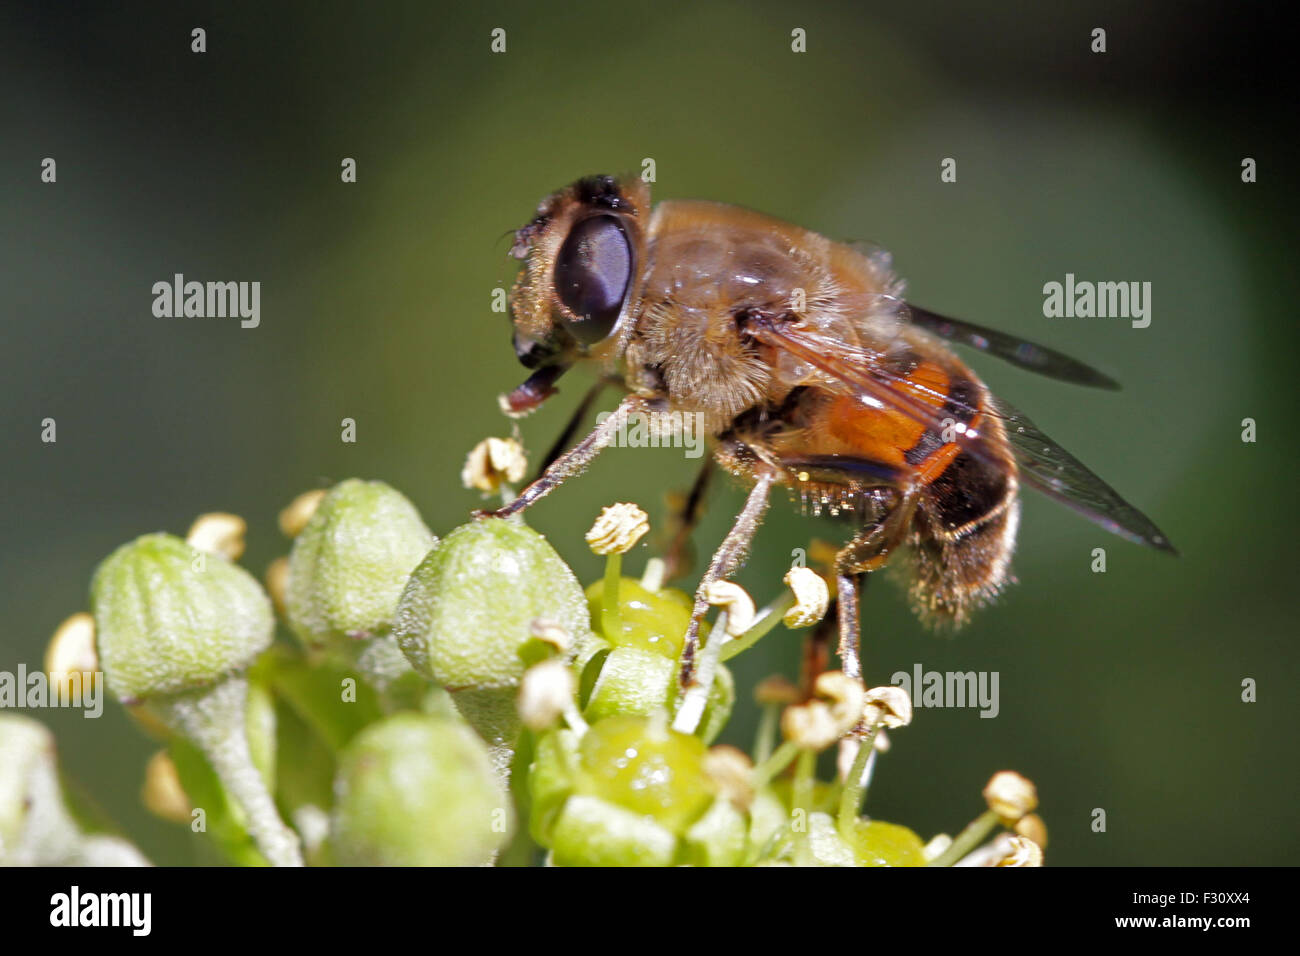 Close-up, macro photo of a Bee feeding on an Ivy flower. - Stock Image